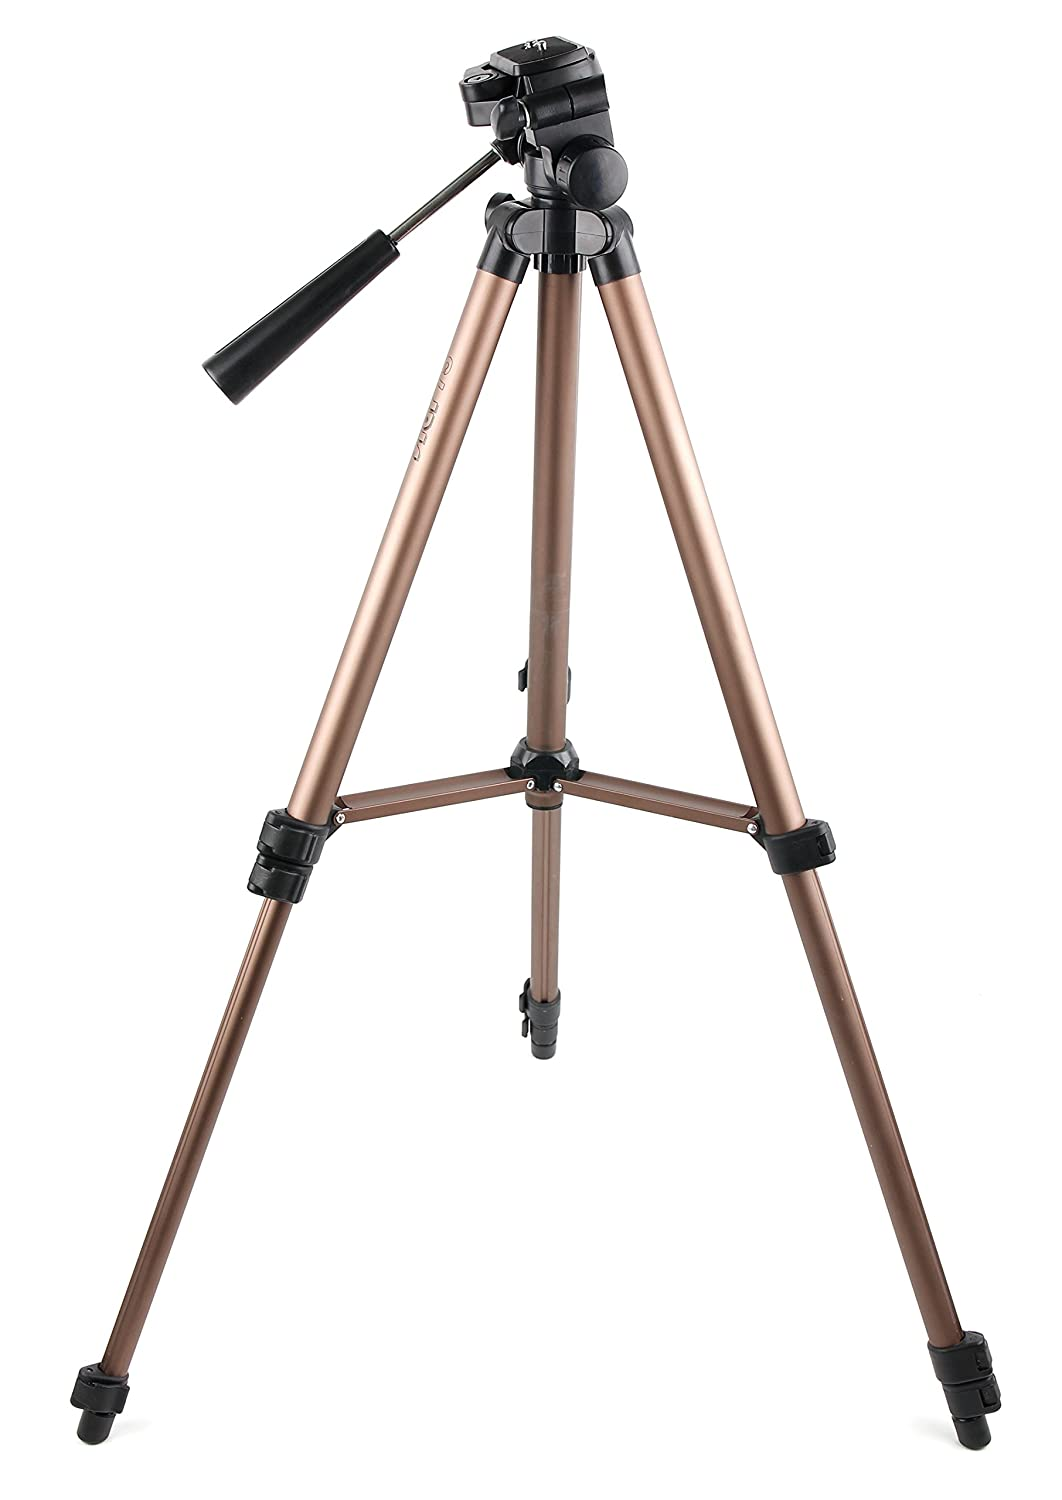 DURAGADGET Black & Gold Tripod with Extendable Legs & Ball-Tilt Head (Binocular Adaptor Required) for Nikon Aculon A211 10-22x50 | 10x42 | 10x50 | 12x50 | 7x35 | 7x50 | 8-18x42 | 8x42 Binoculars 5057234873004